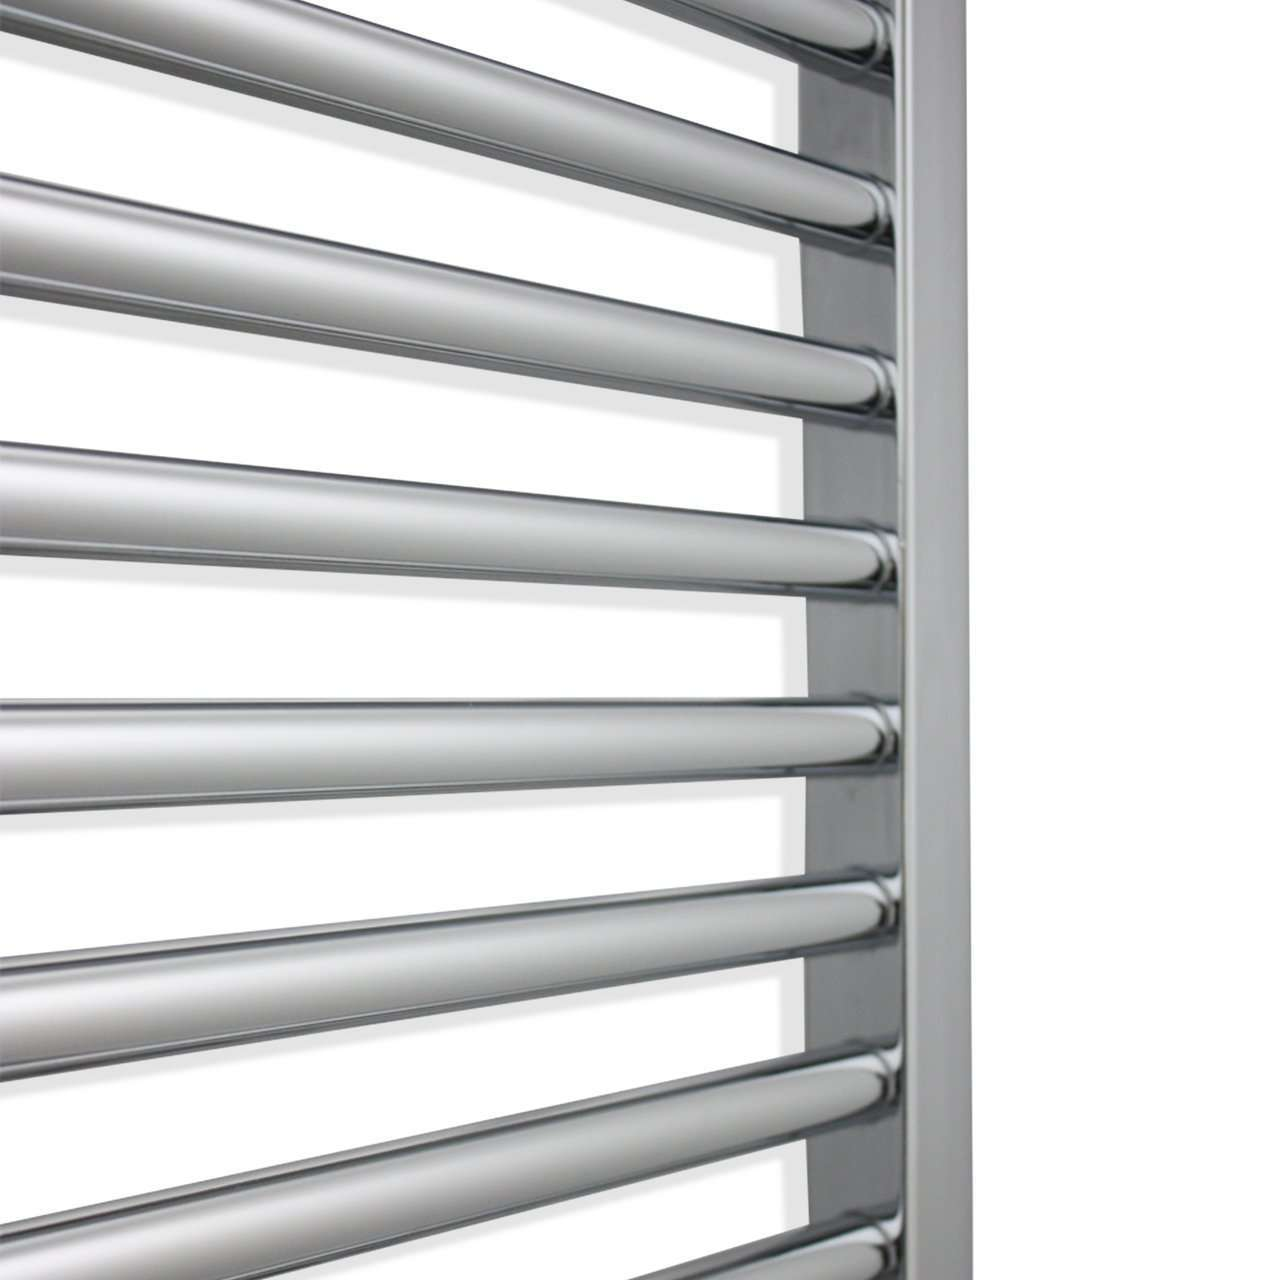 750mm Wide 400mm High Flat Chrome Heated Towel Rail Radiator HTR